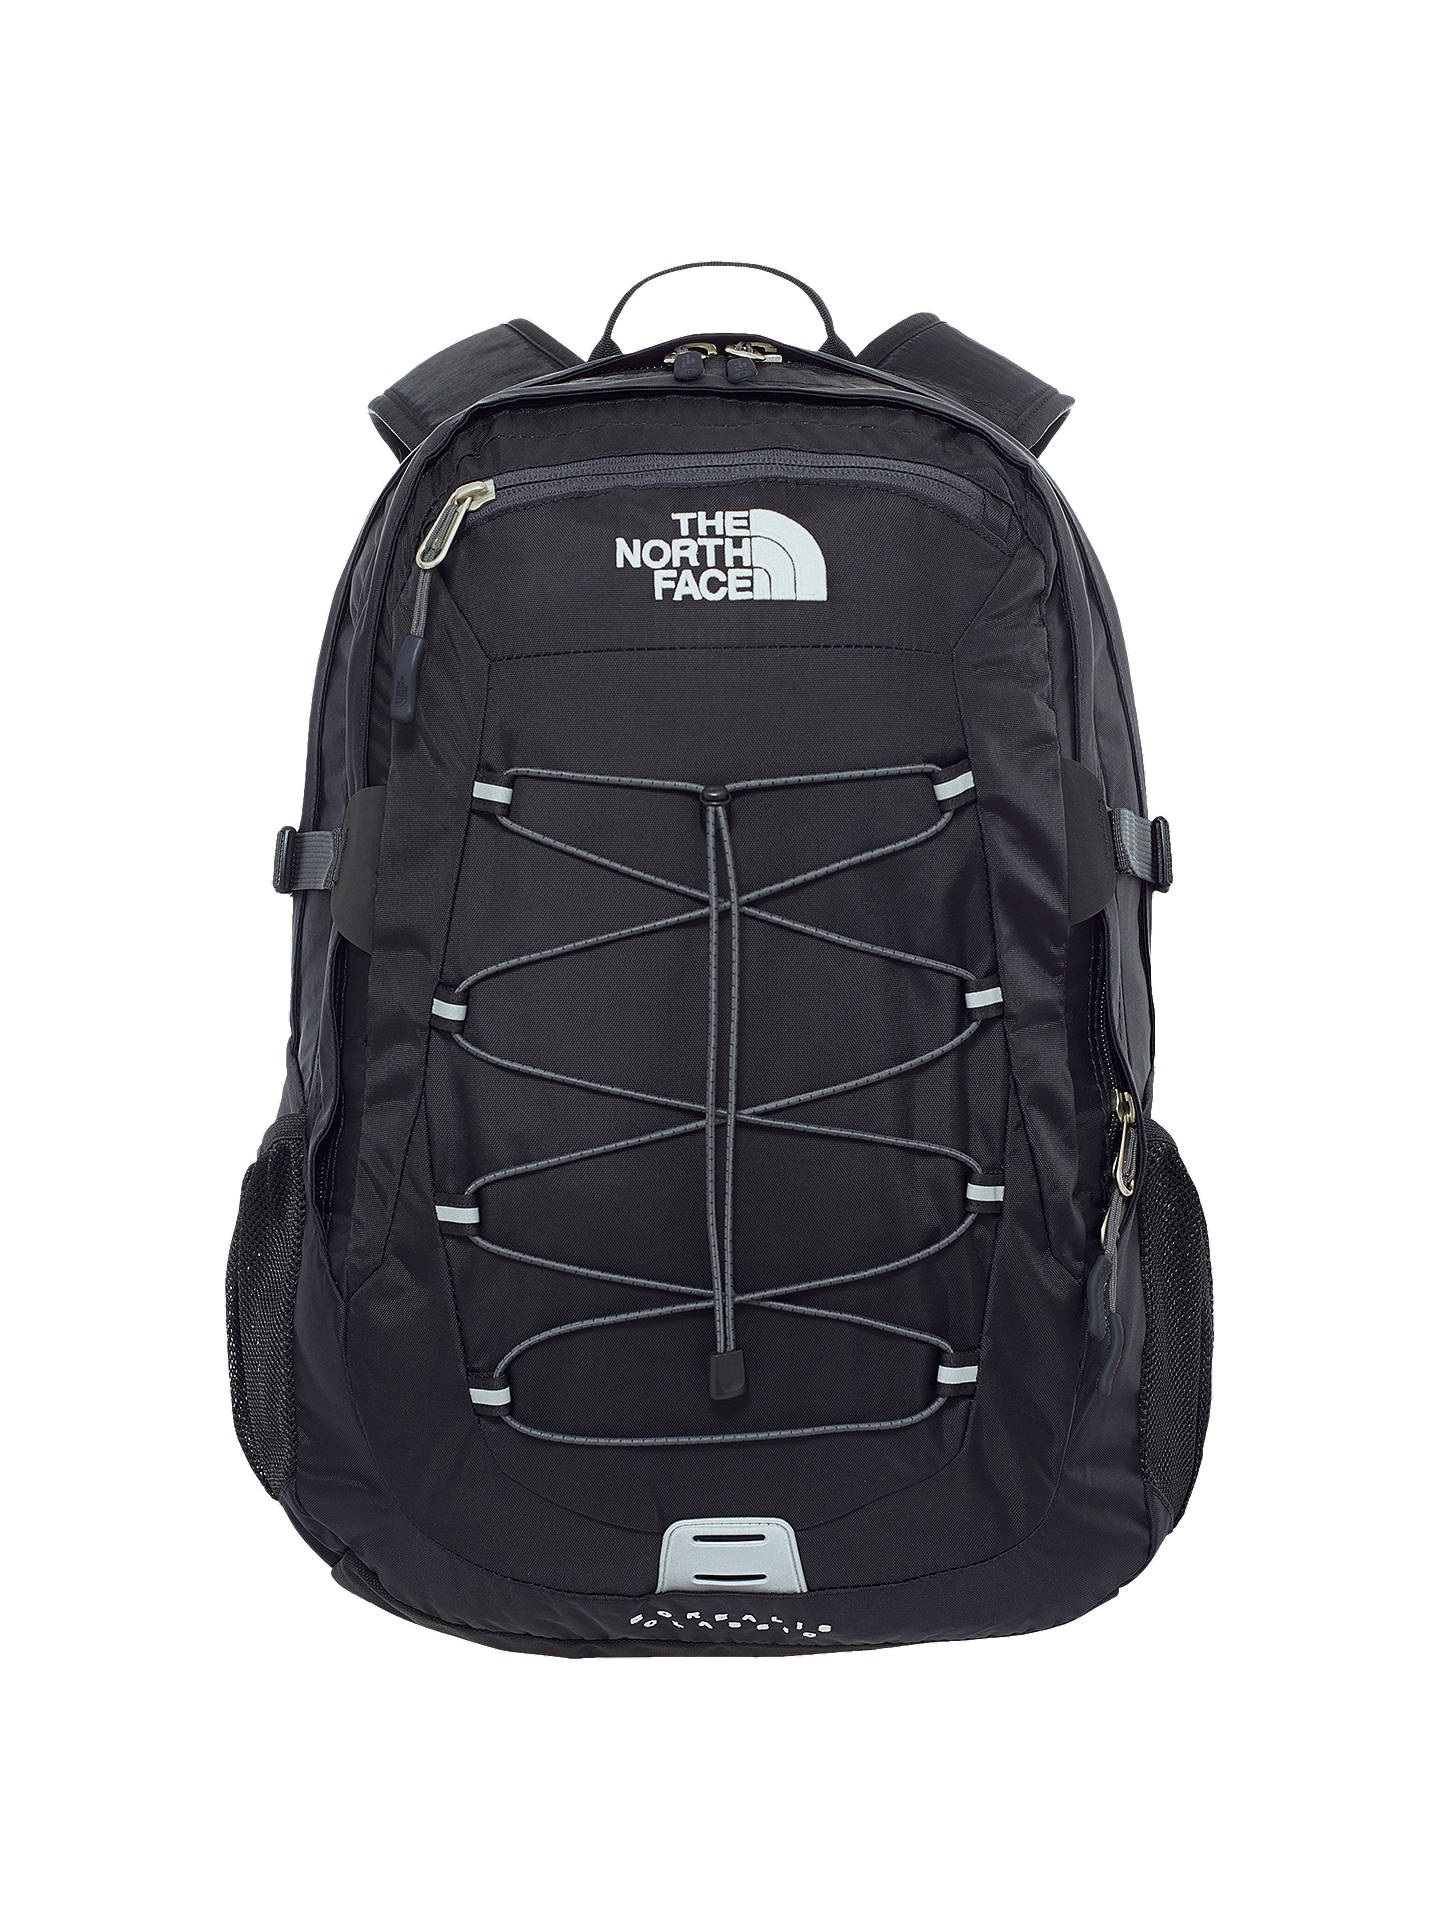 BuyThe North Face Borealis Classic Backpack, Black Online at johnlewis.com